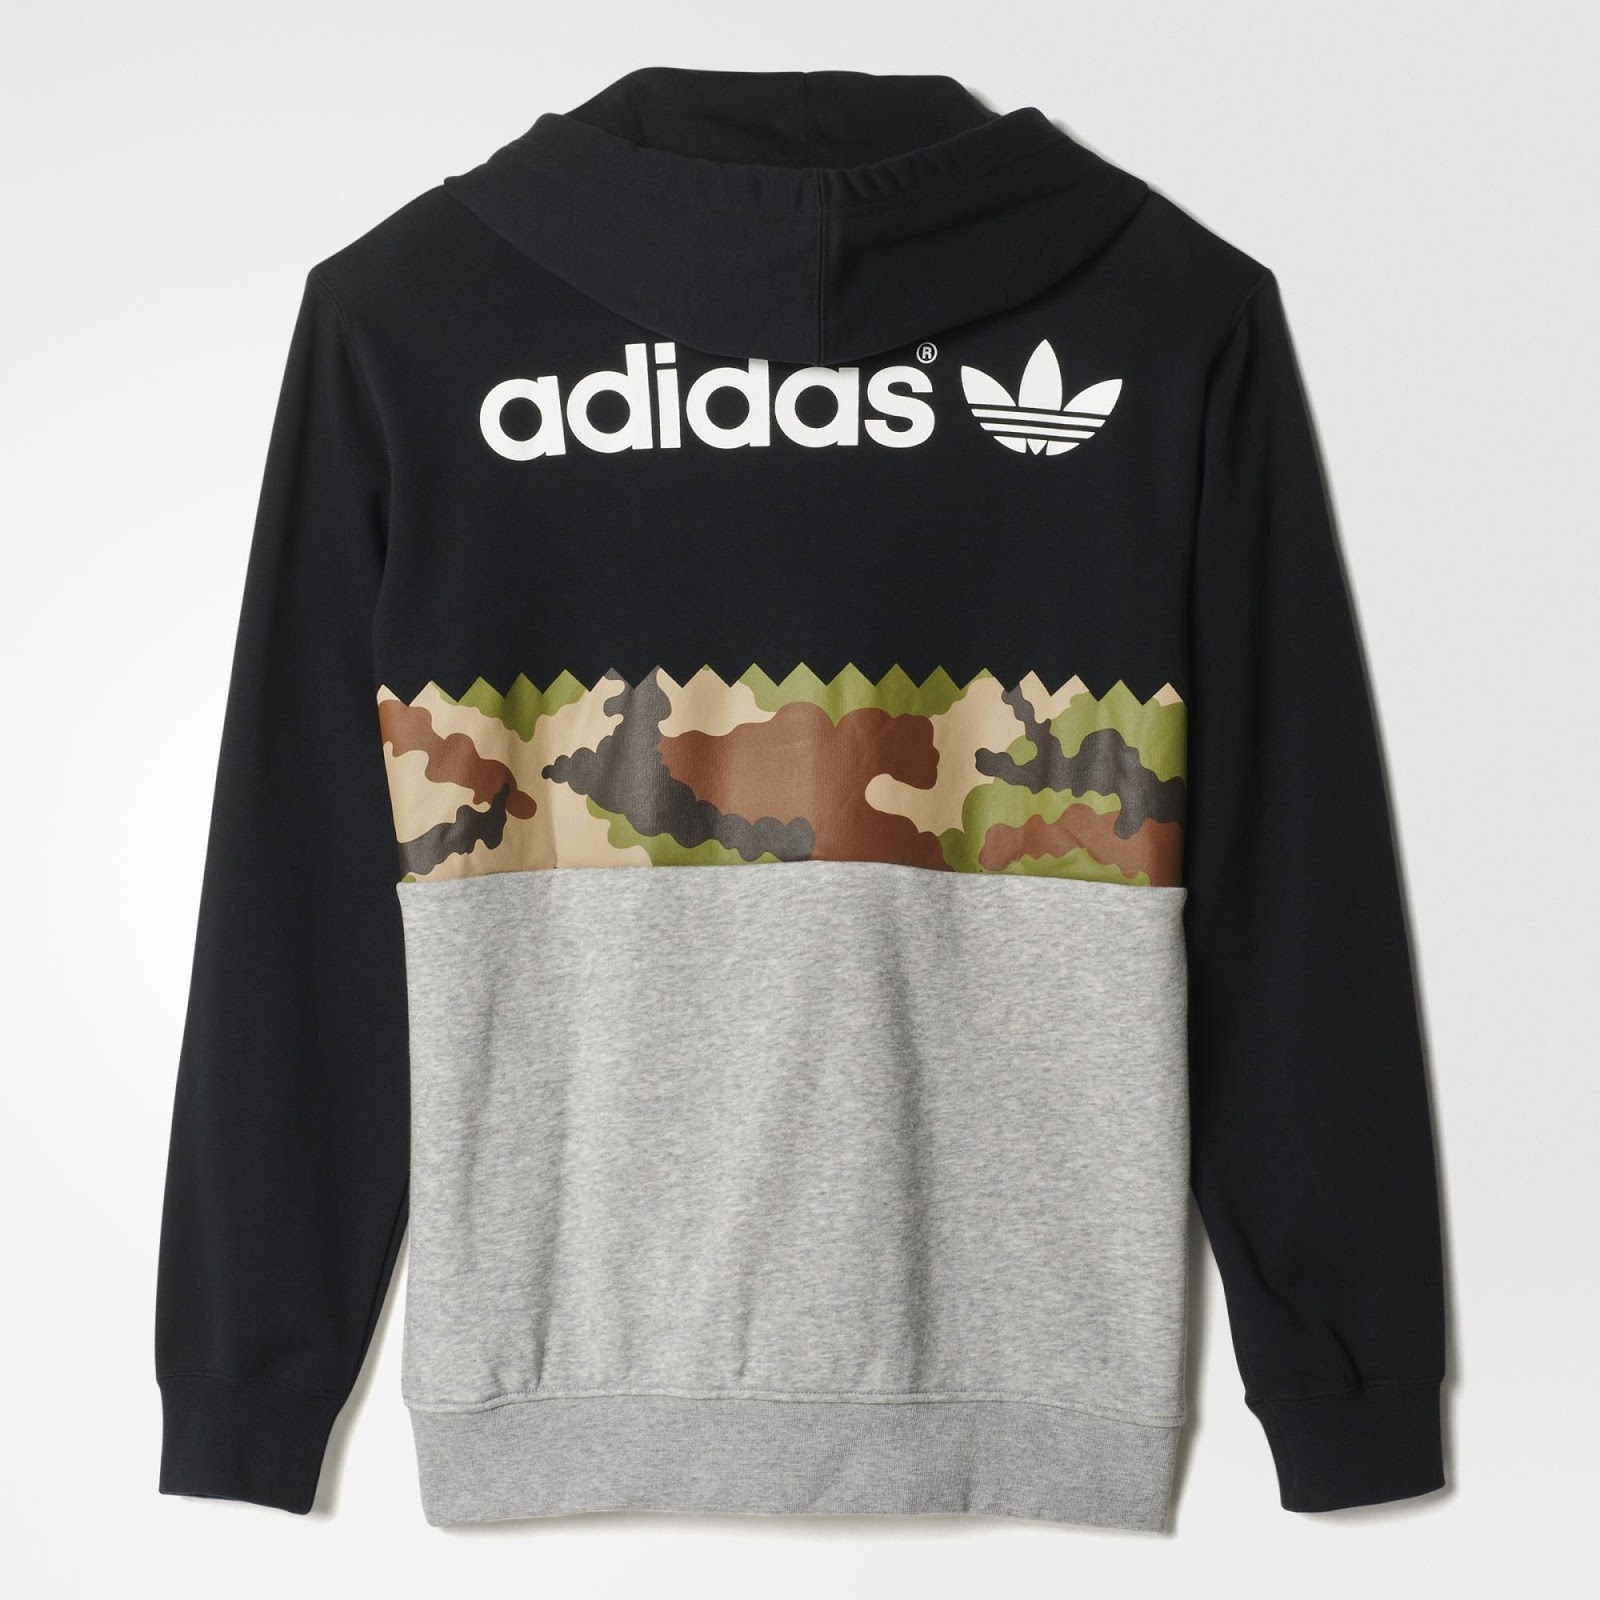 adidas 03 originals logo